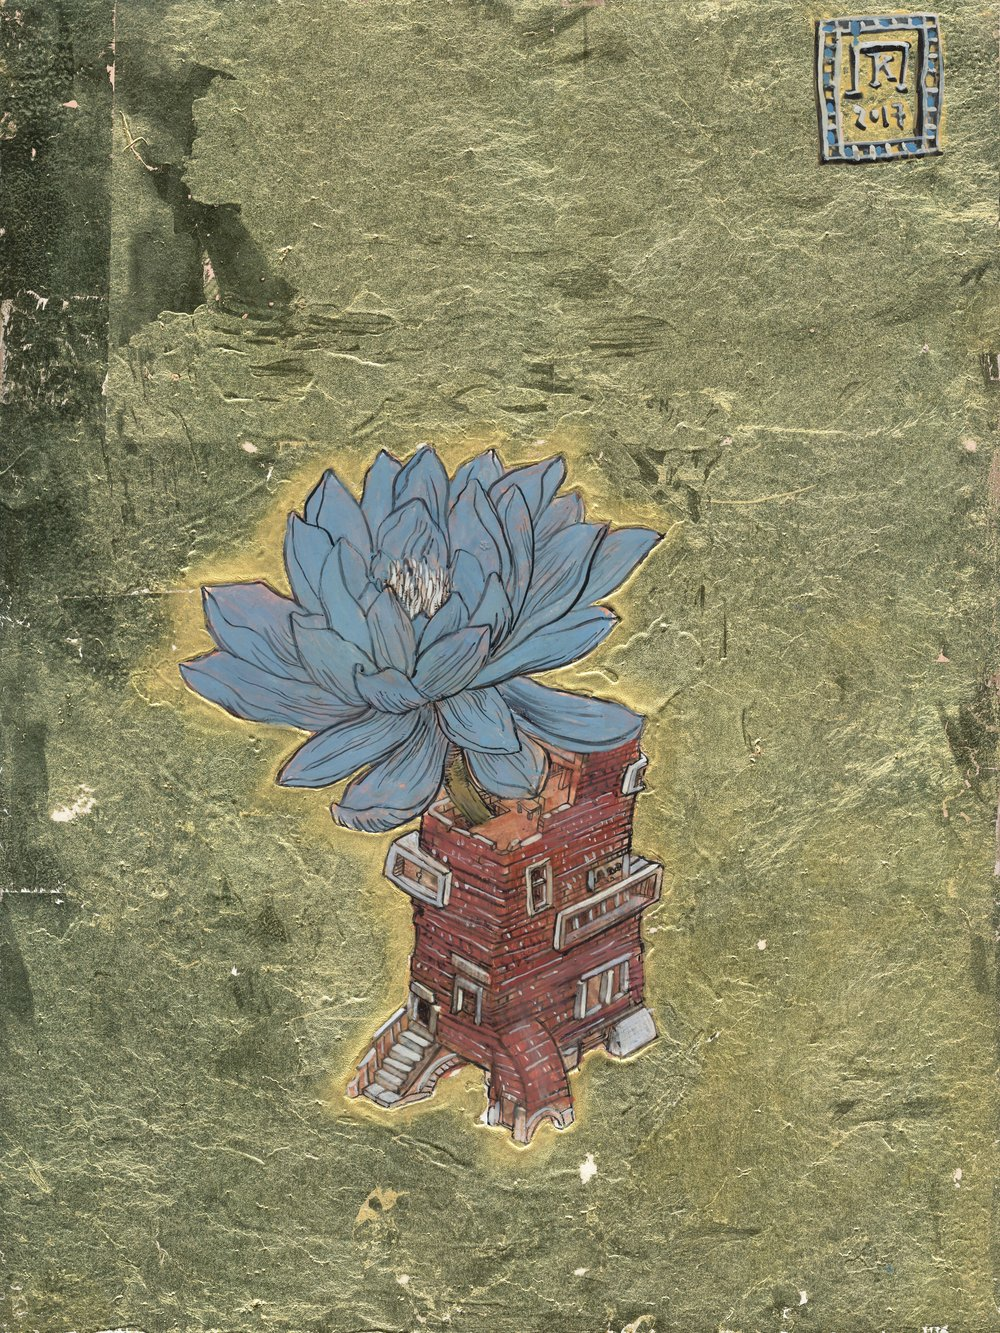 Blue Flower Red Brick Tower  - Ink, egg-tempera and gold leaf on panel - 9.5x7in / 24x18cm